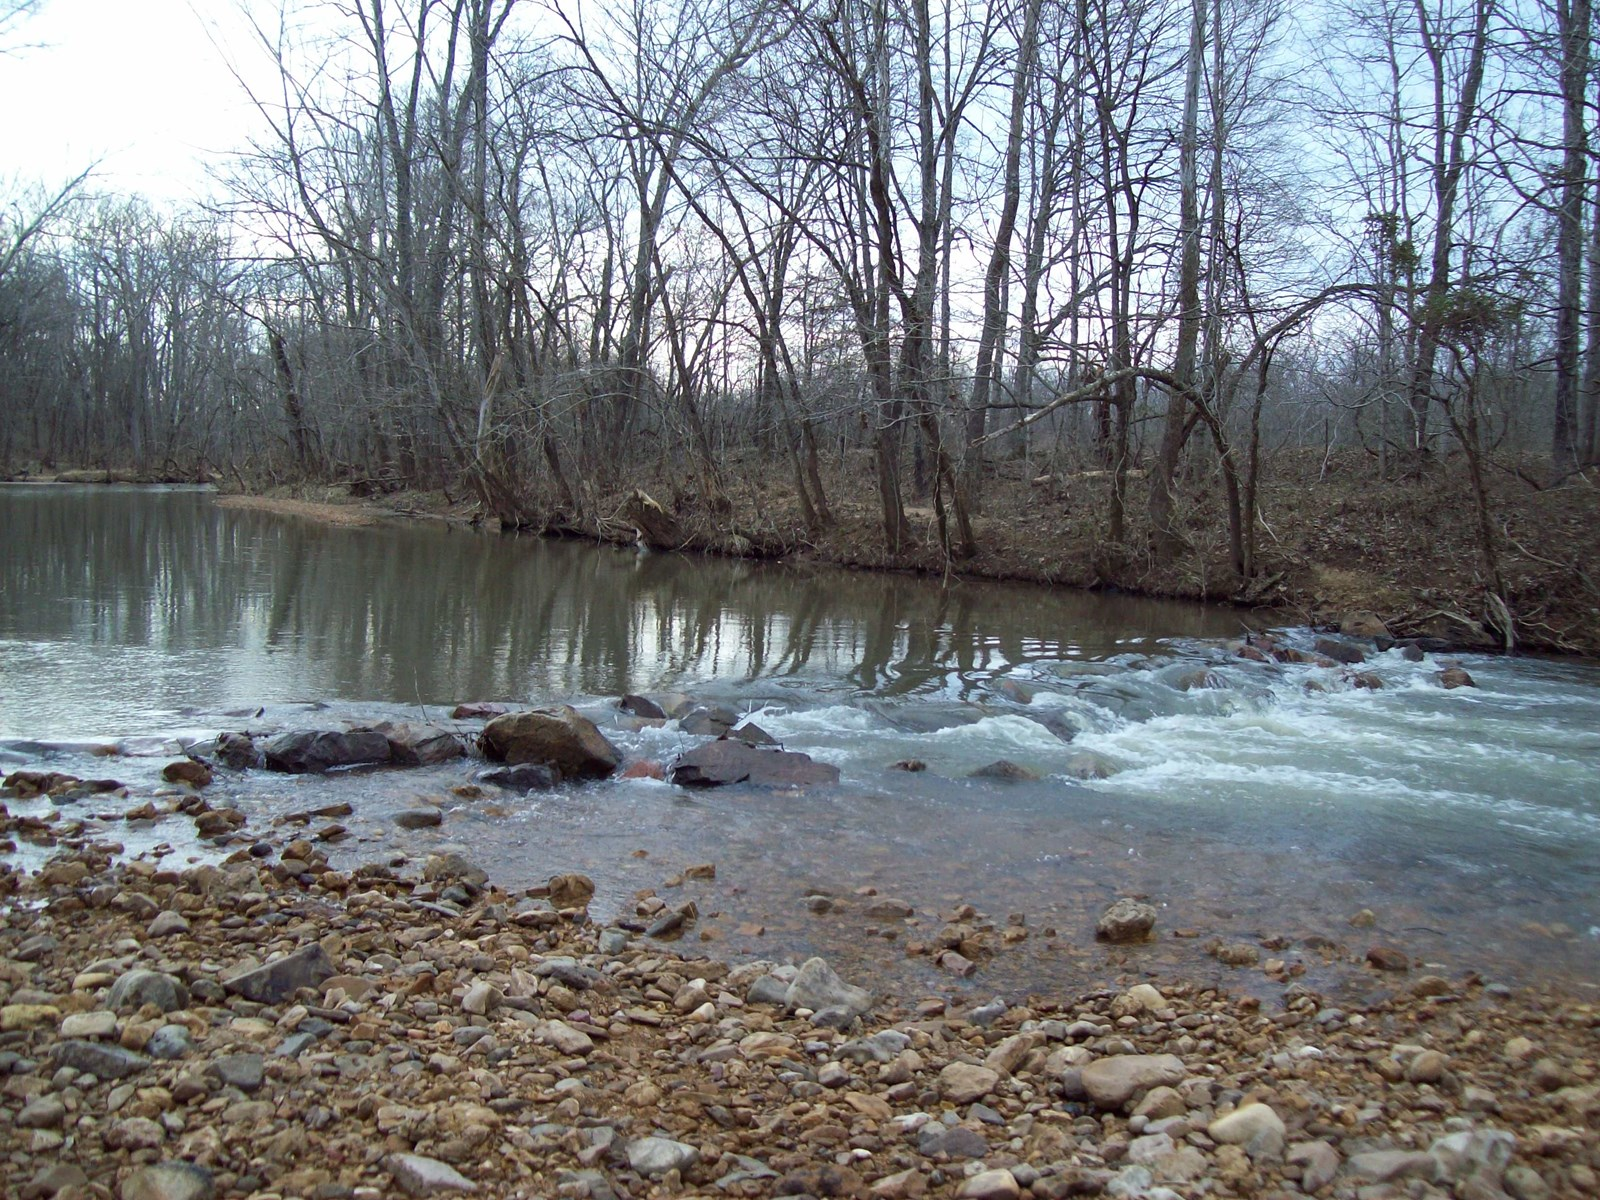 Acreage on Clark's Creek at Patterson, Mo.